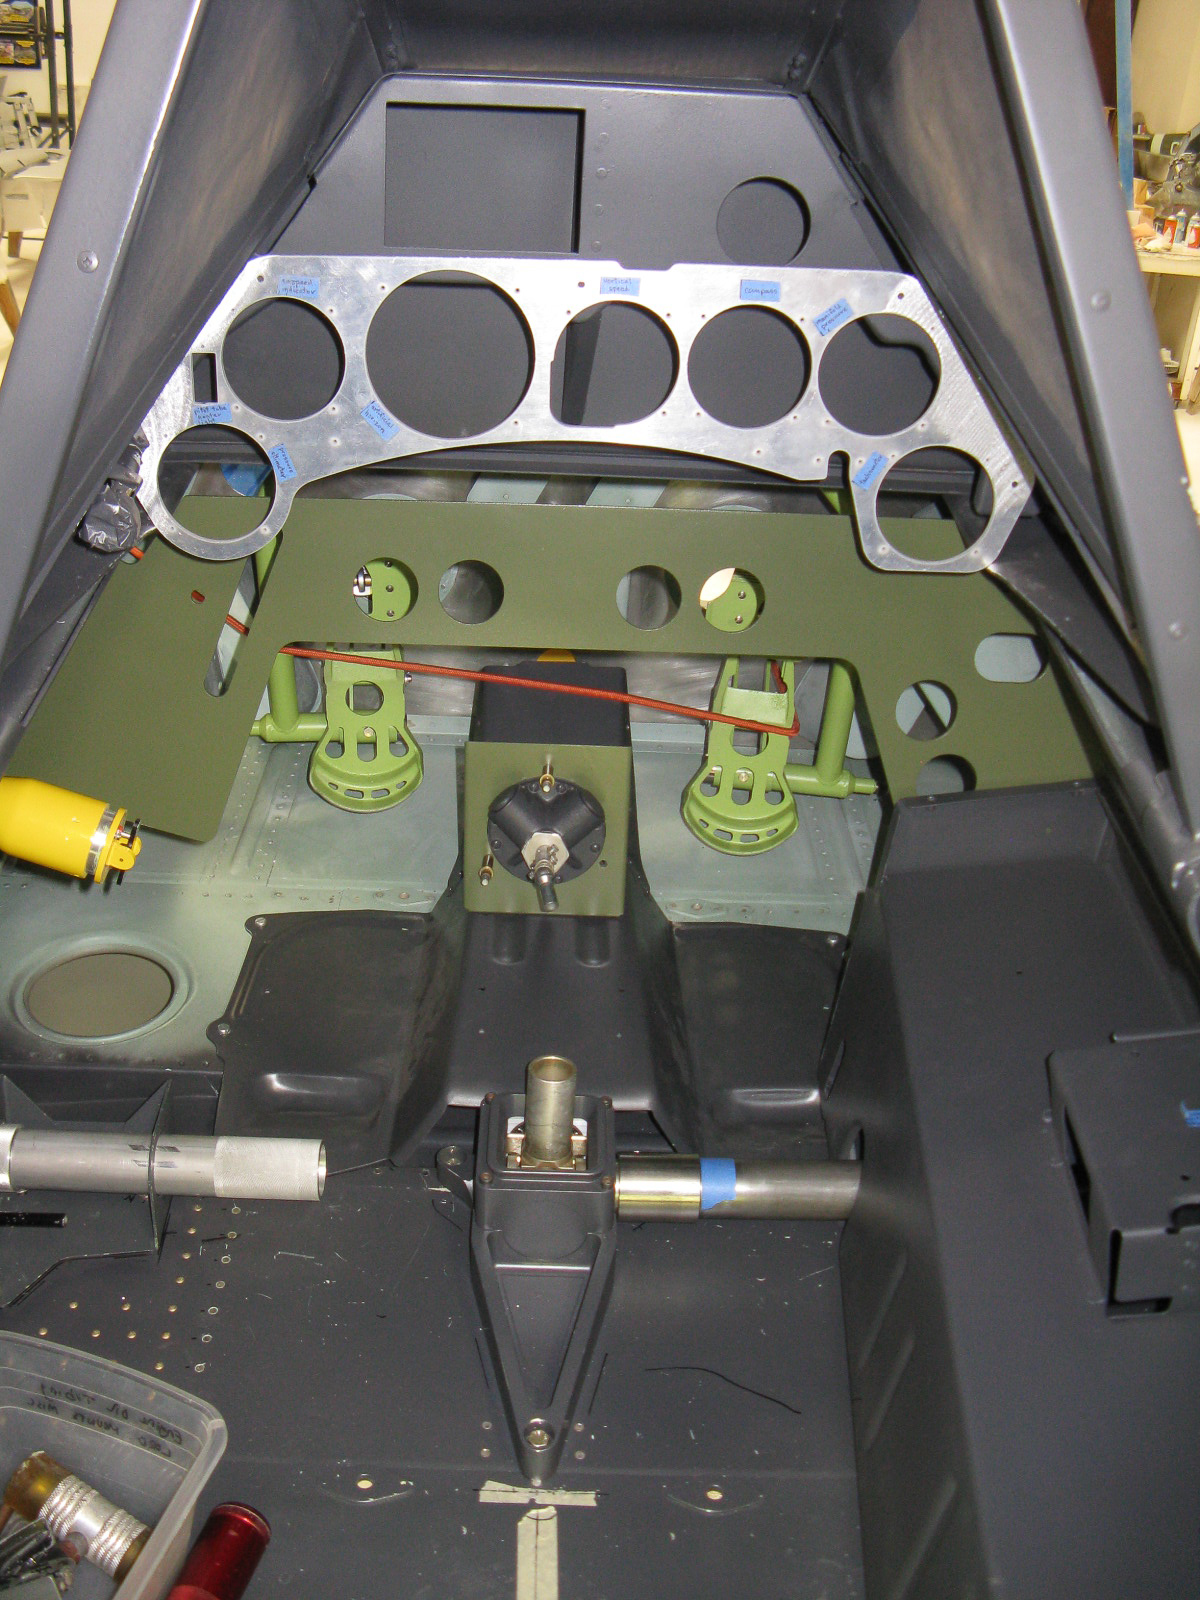 Test-fitting the custom-made instrument panel in the FW-190. (photo via GossHawk Unlimited)